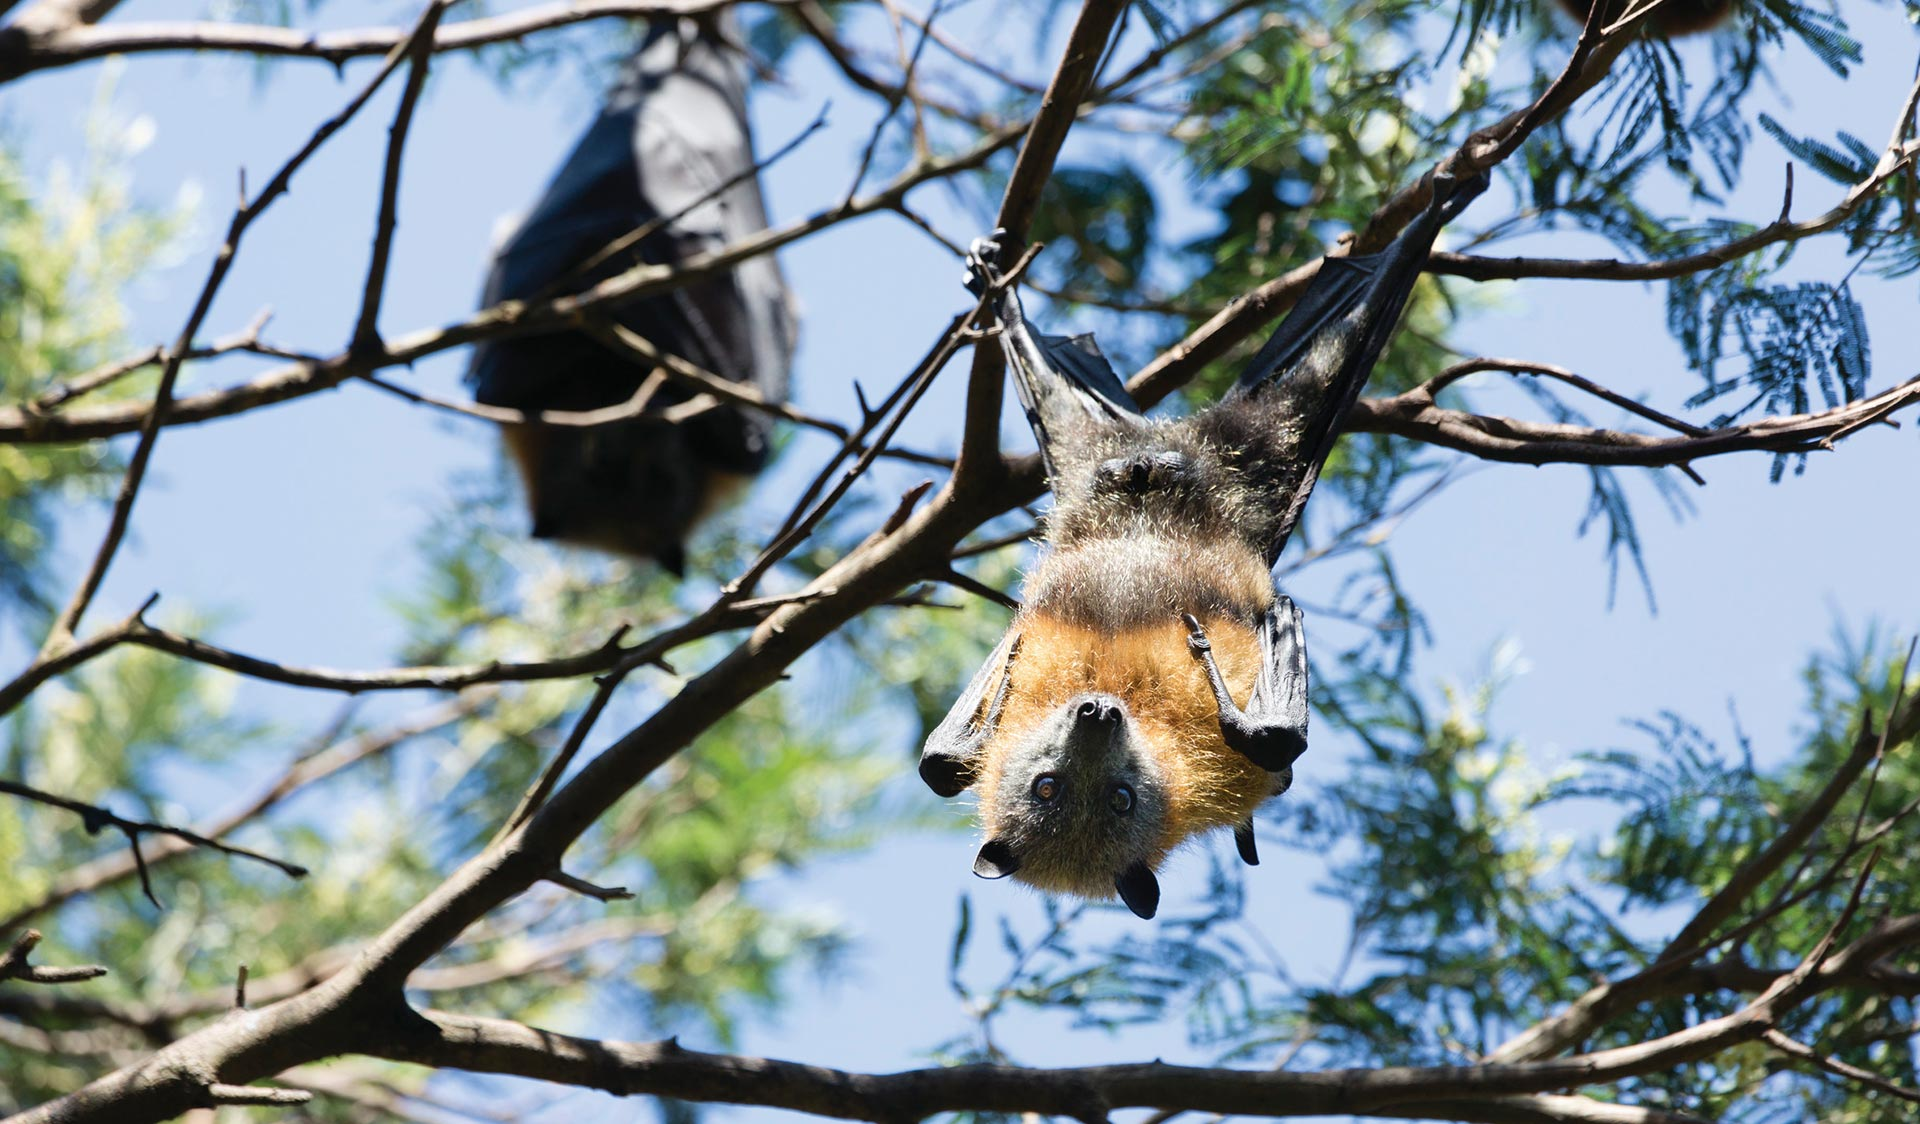 Up close and personal with a Grey Headed Flying Fox in Yarra Bend Park.